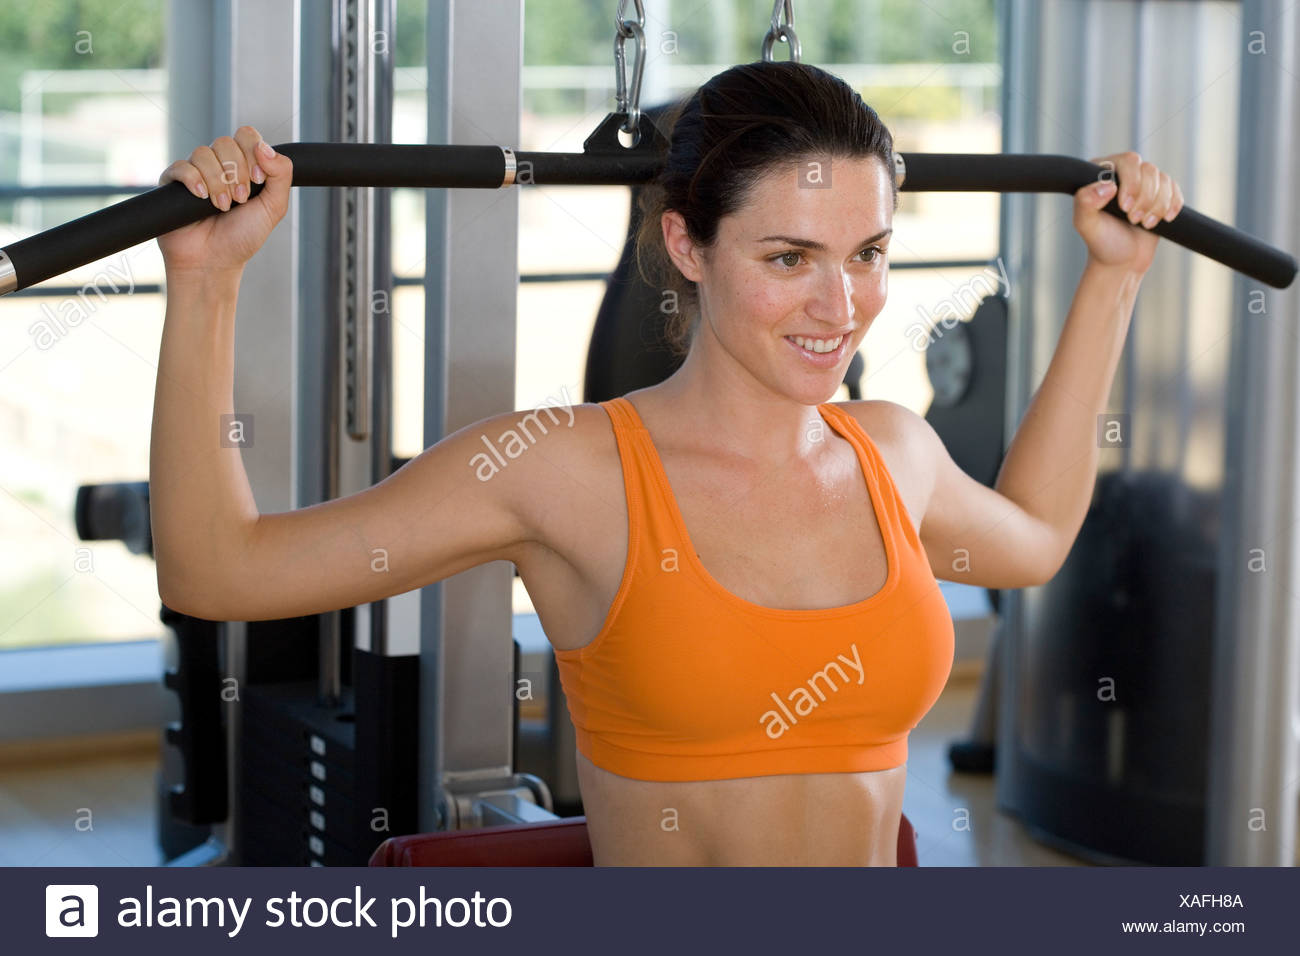 Woman using exercise equipment in gym, smiling, close-up Stock Photo